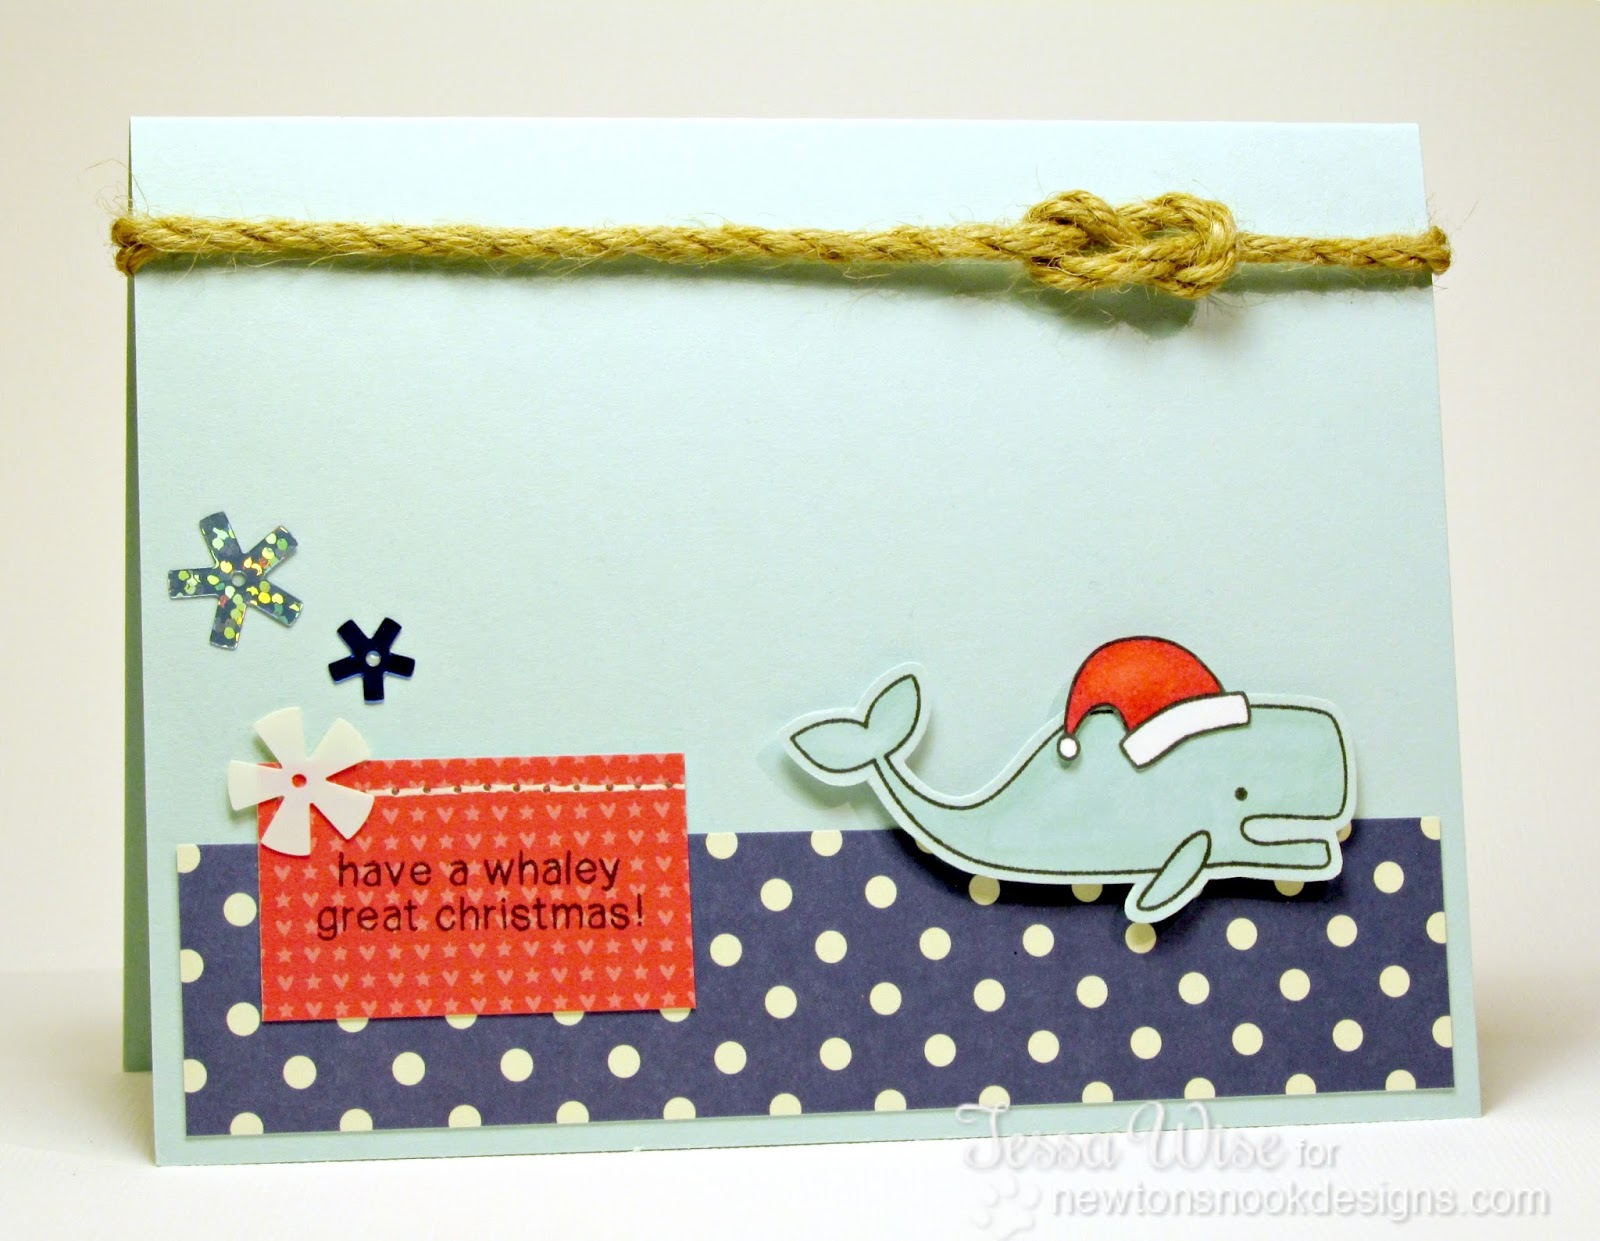 CRAFTY GIRL DESIGNS: A Whaley Great Christmas Card